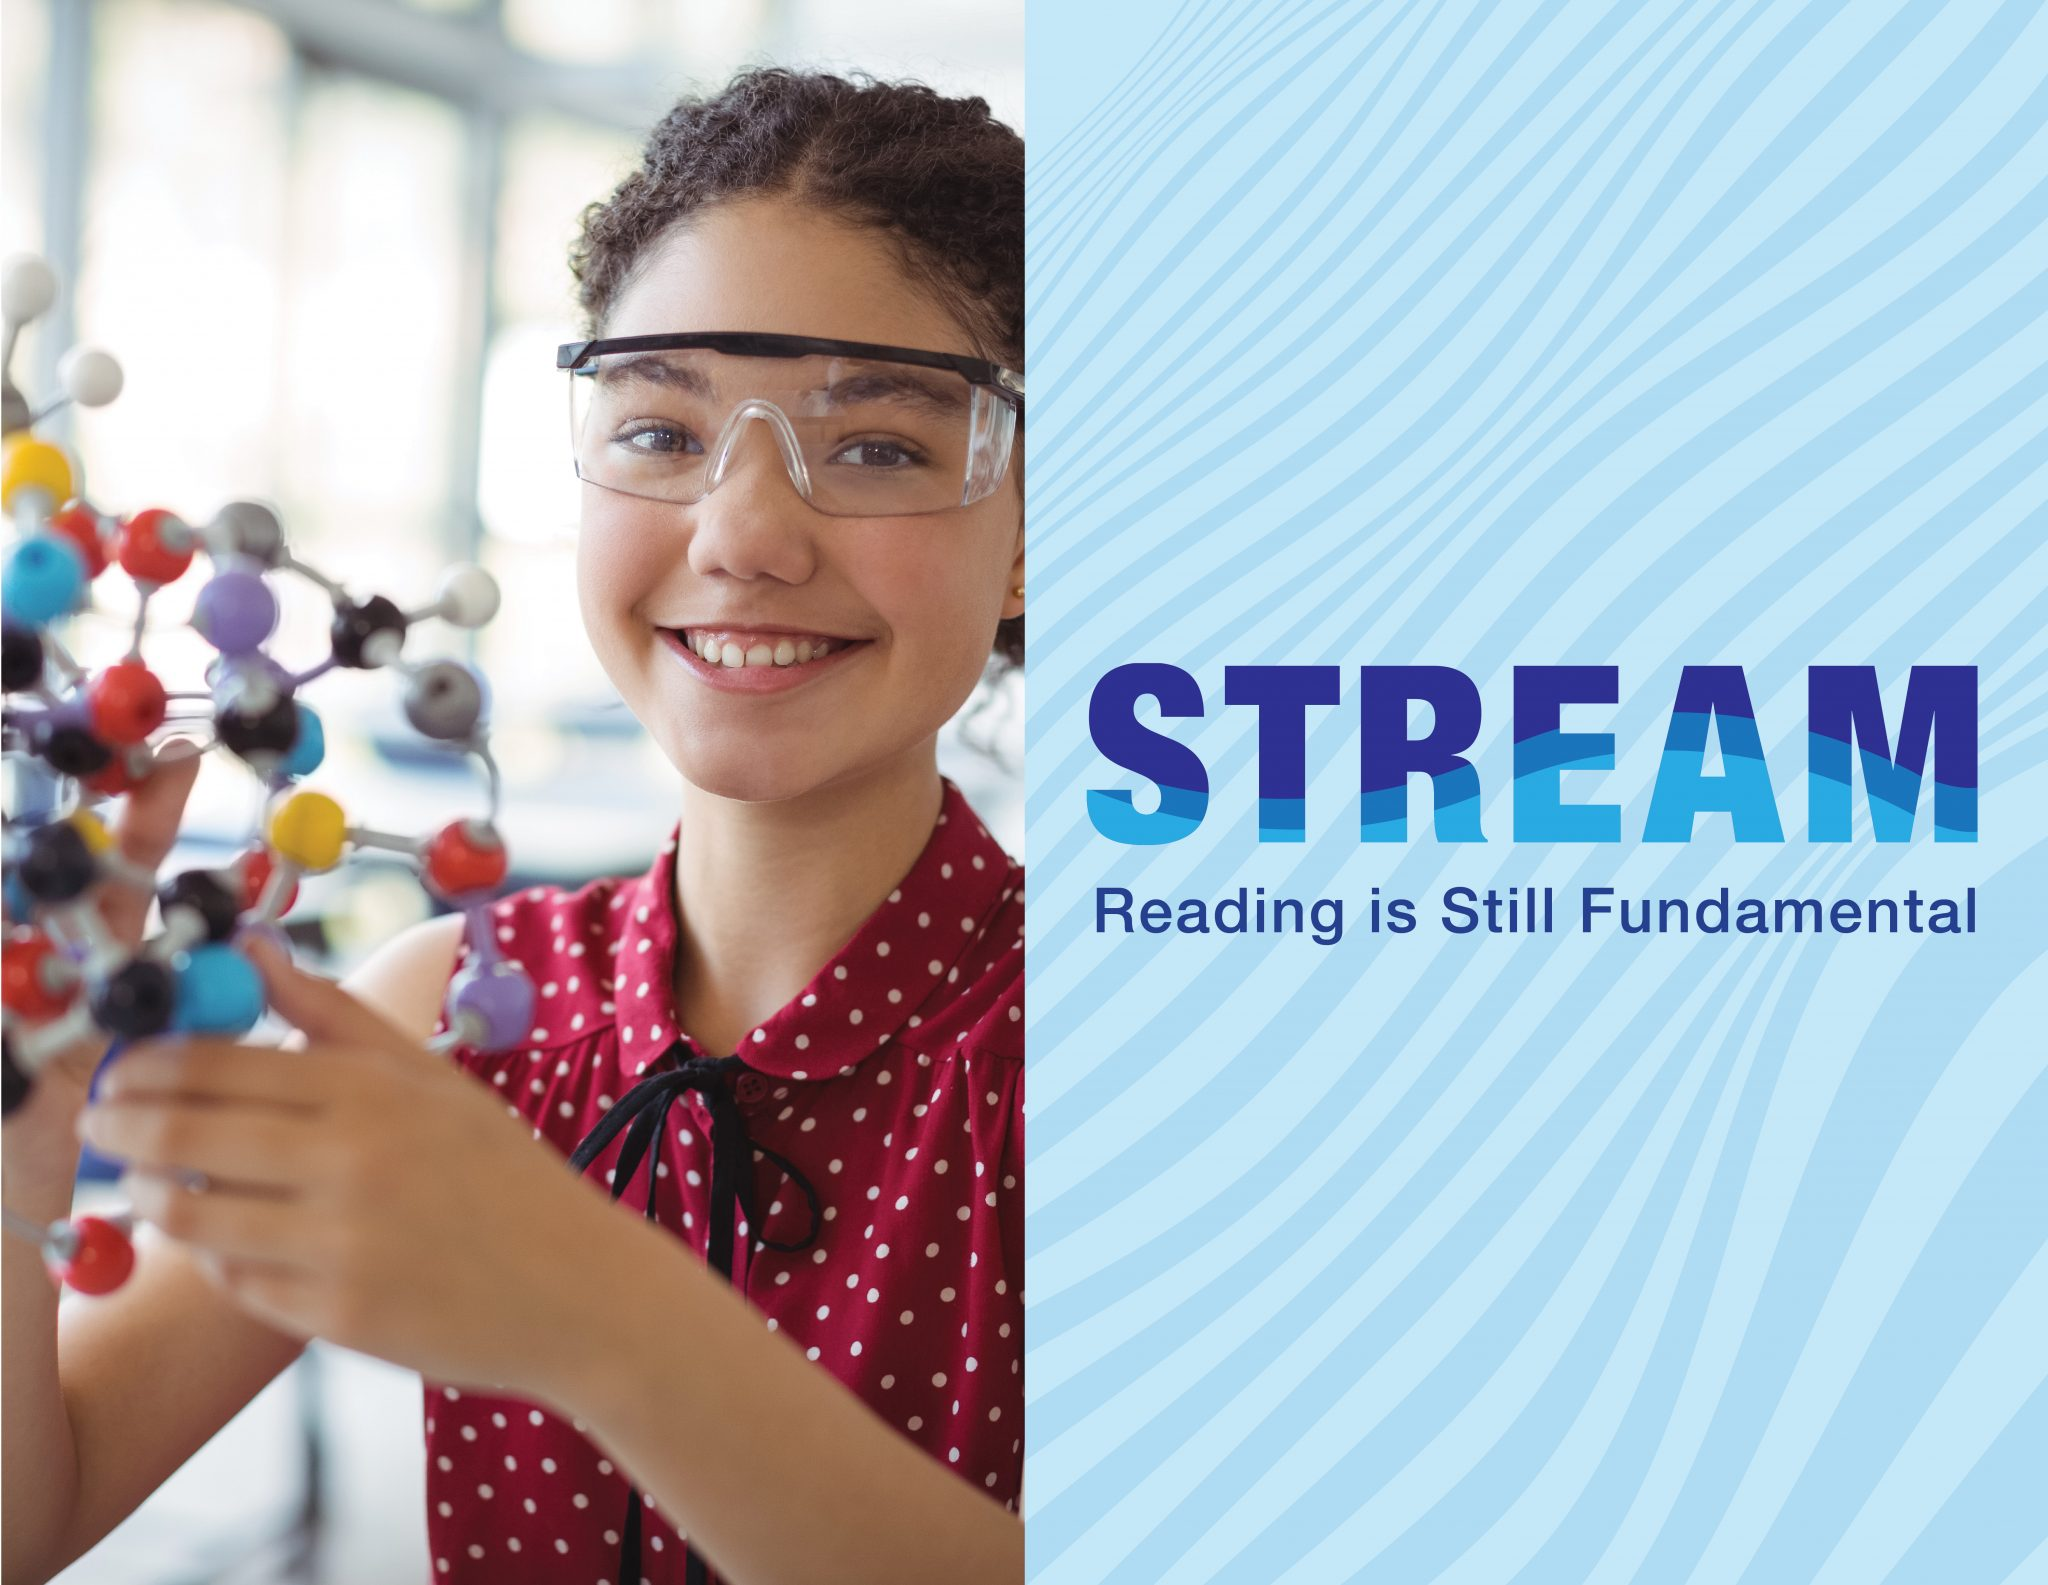 Girl wearing safety goggles examines a scientific model